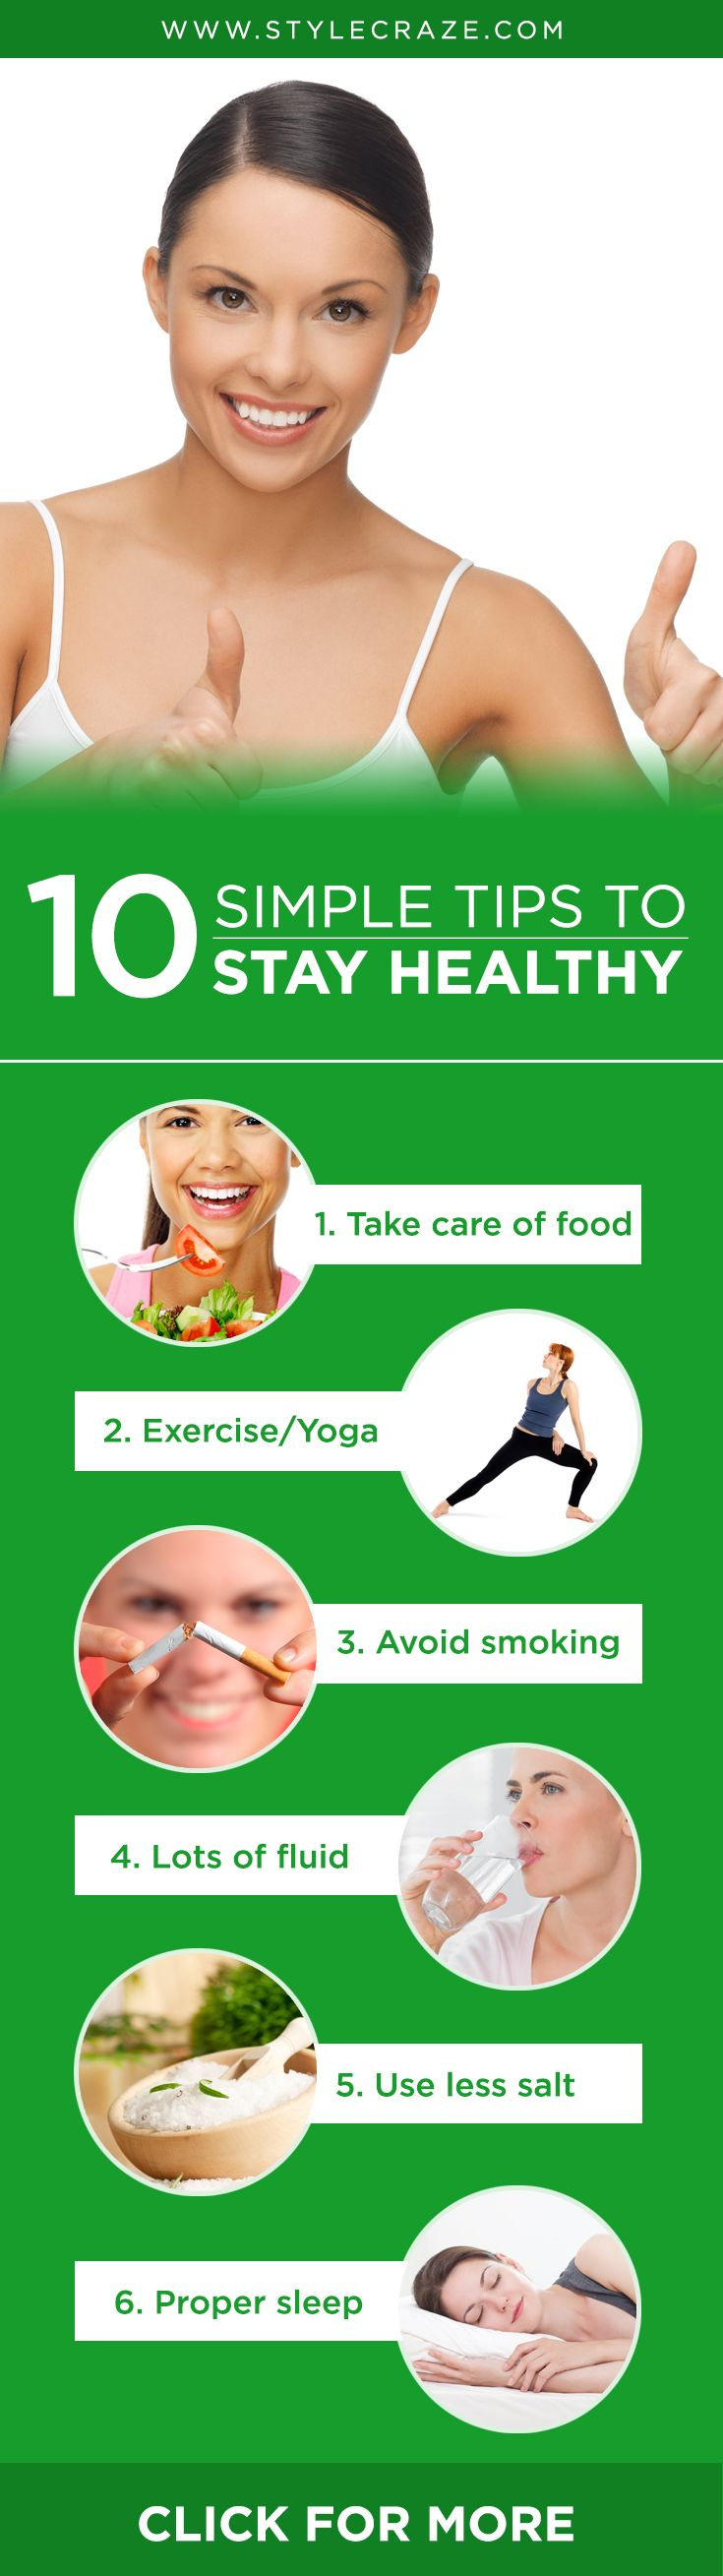 Health Is Wealth: 16 Simple Tips To Stay Healthy